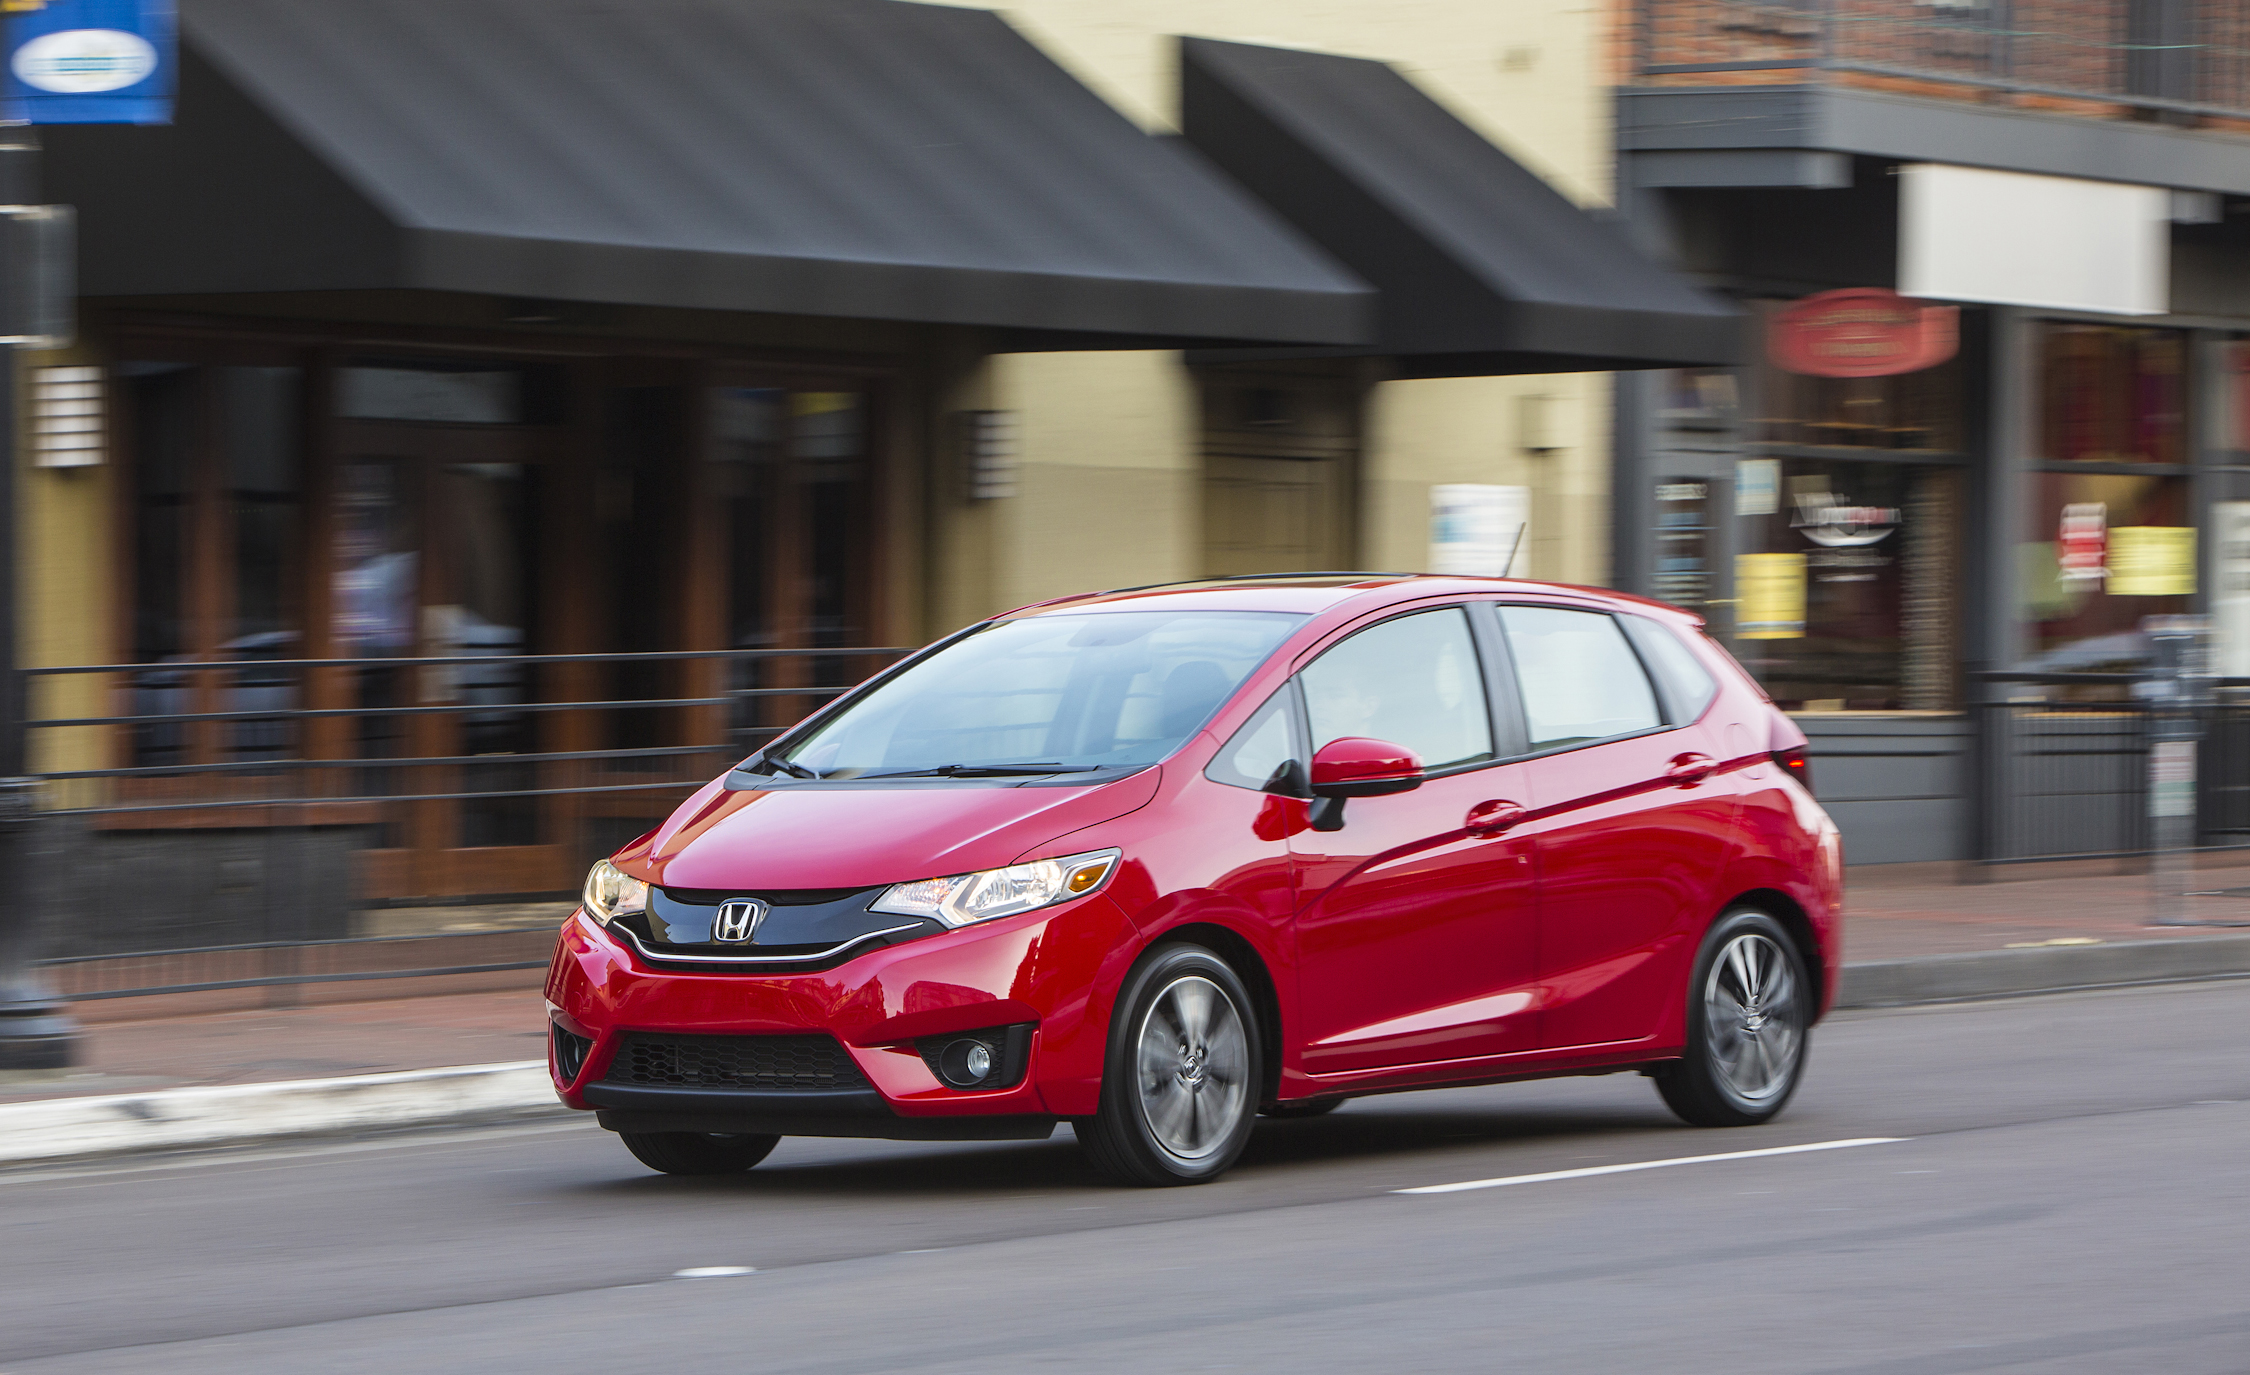 2015 Honda Fit (View 10 of 16)